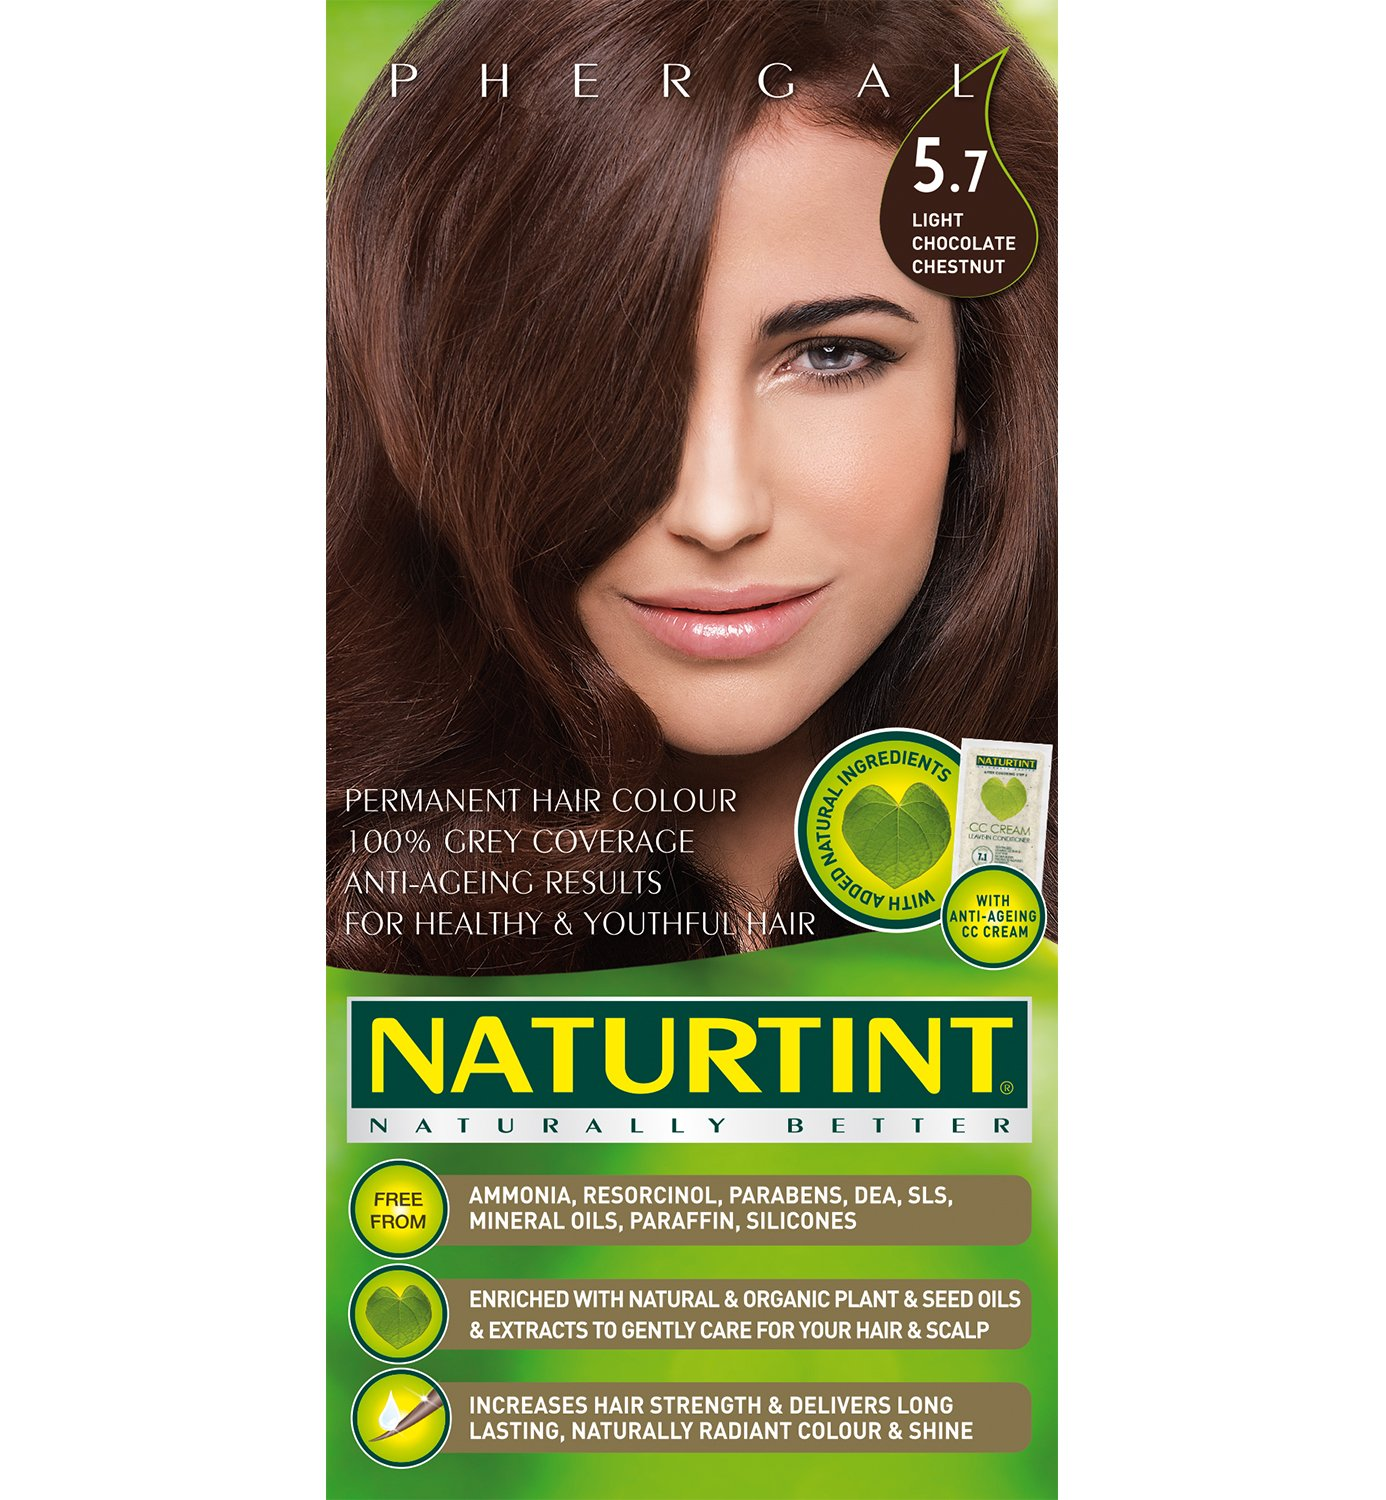 Amazon Naturtint 57 Light Chocolate Chestnut 002 Pound